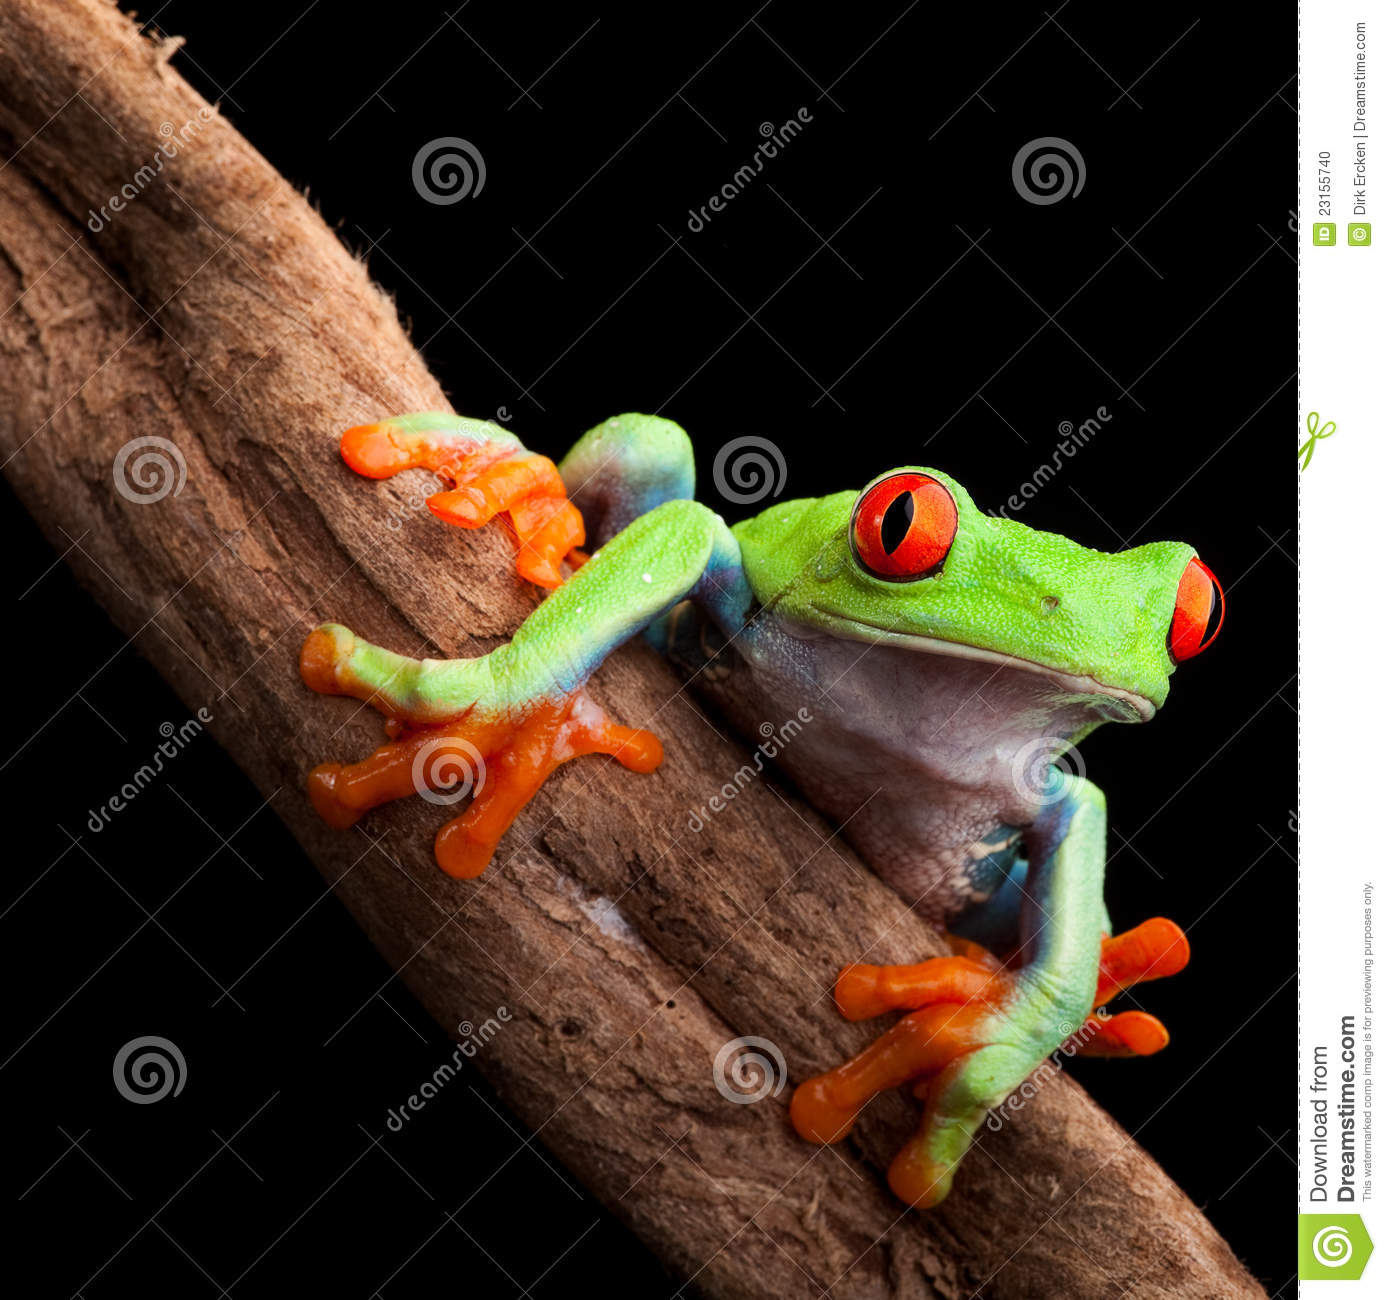 Red eyed tree frog at night in tropical rainforest treefrog agalychnis